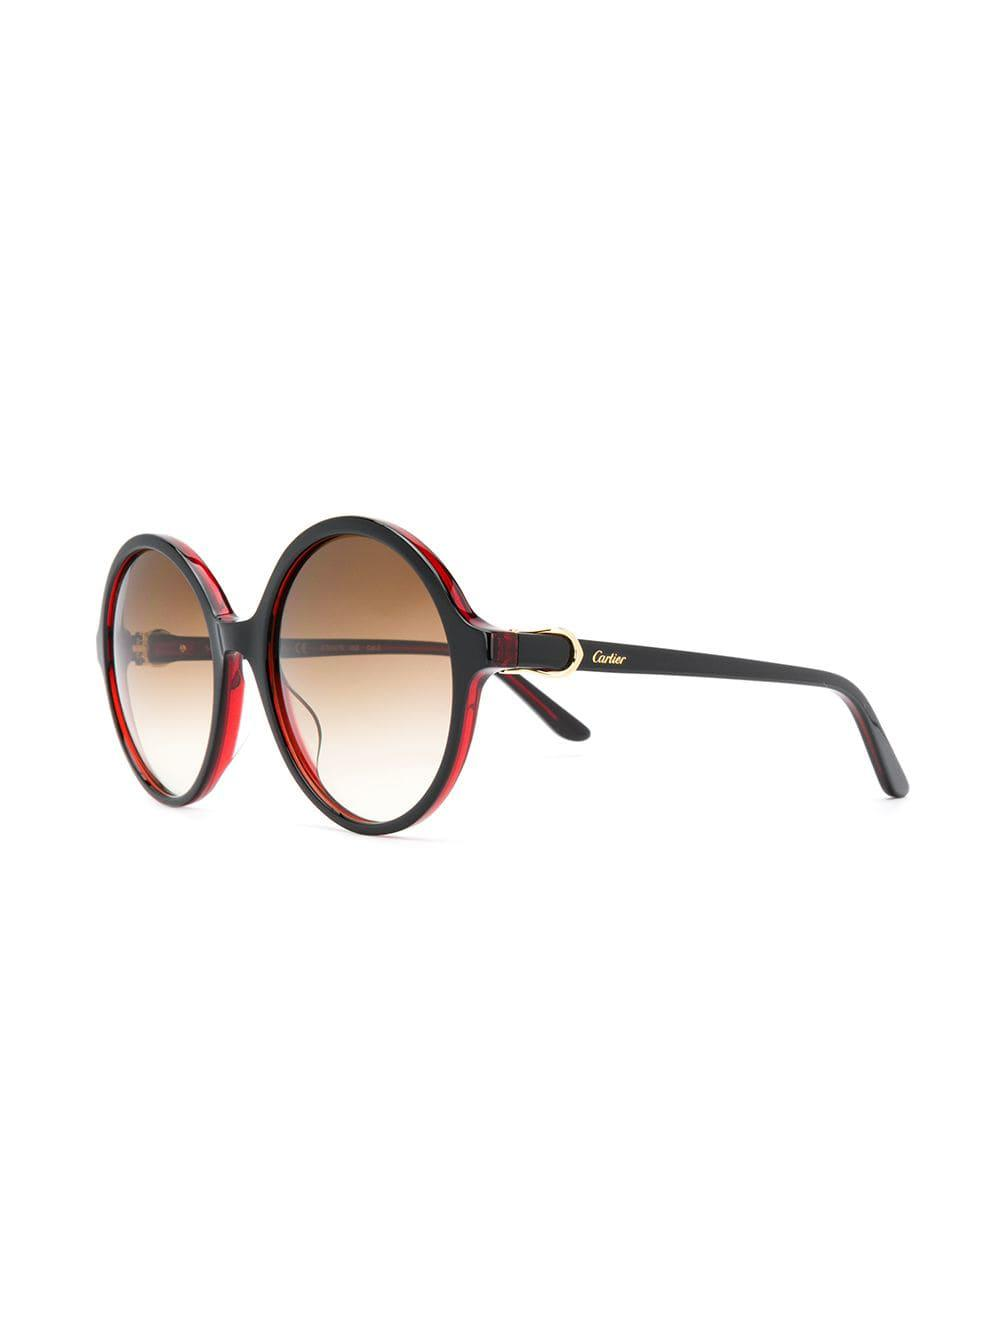 ab83909fd422 Cartier C Décor Sunglasses in Red - Lyst